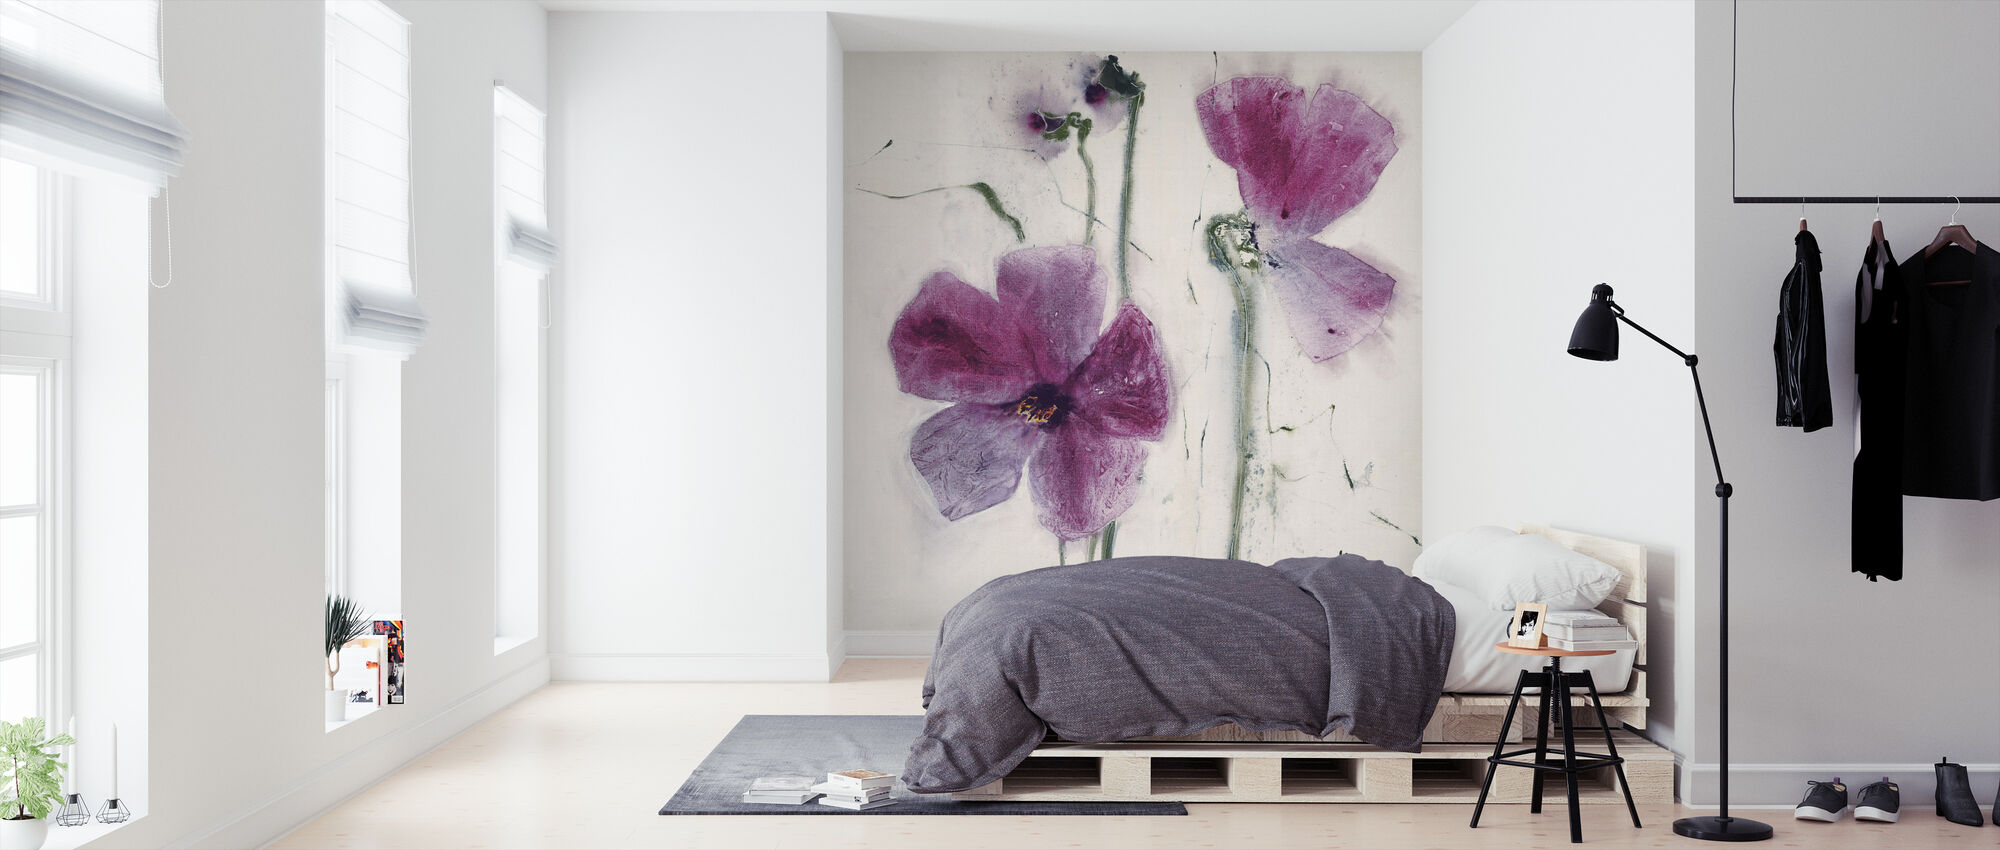 The Purple Thoughts - Wallpaper - Bedroom